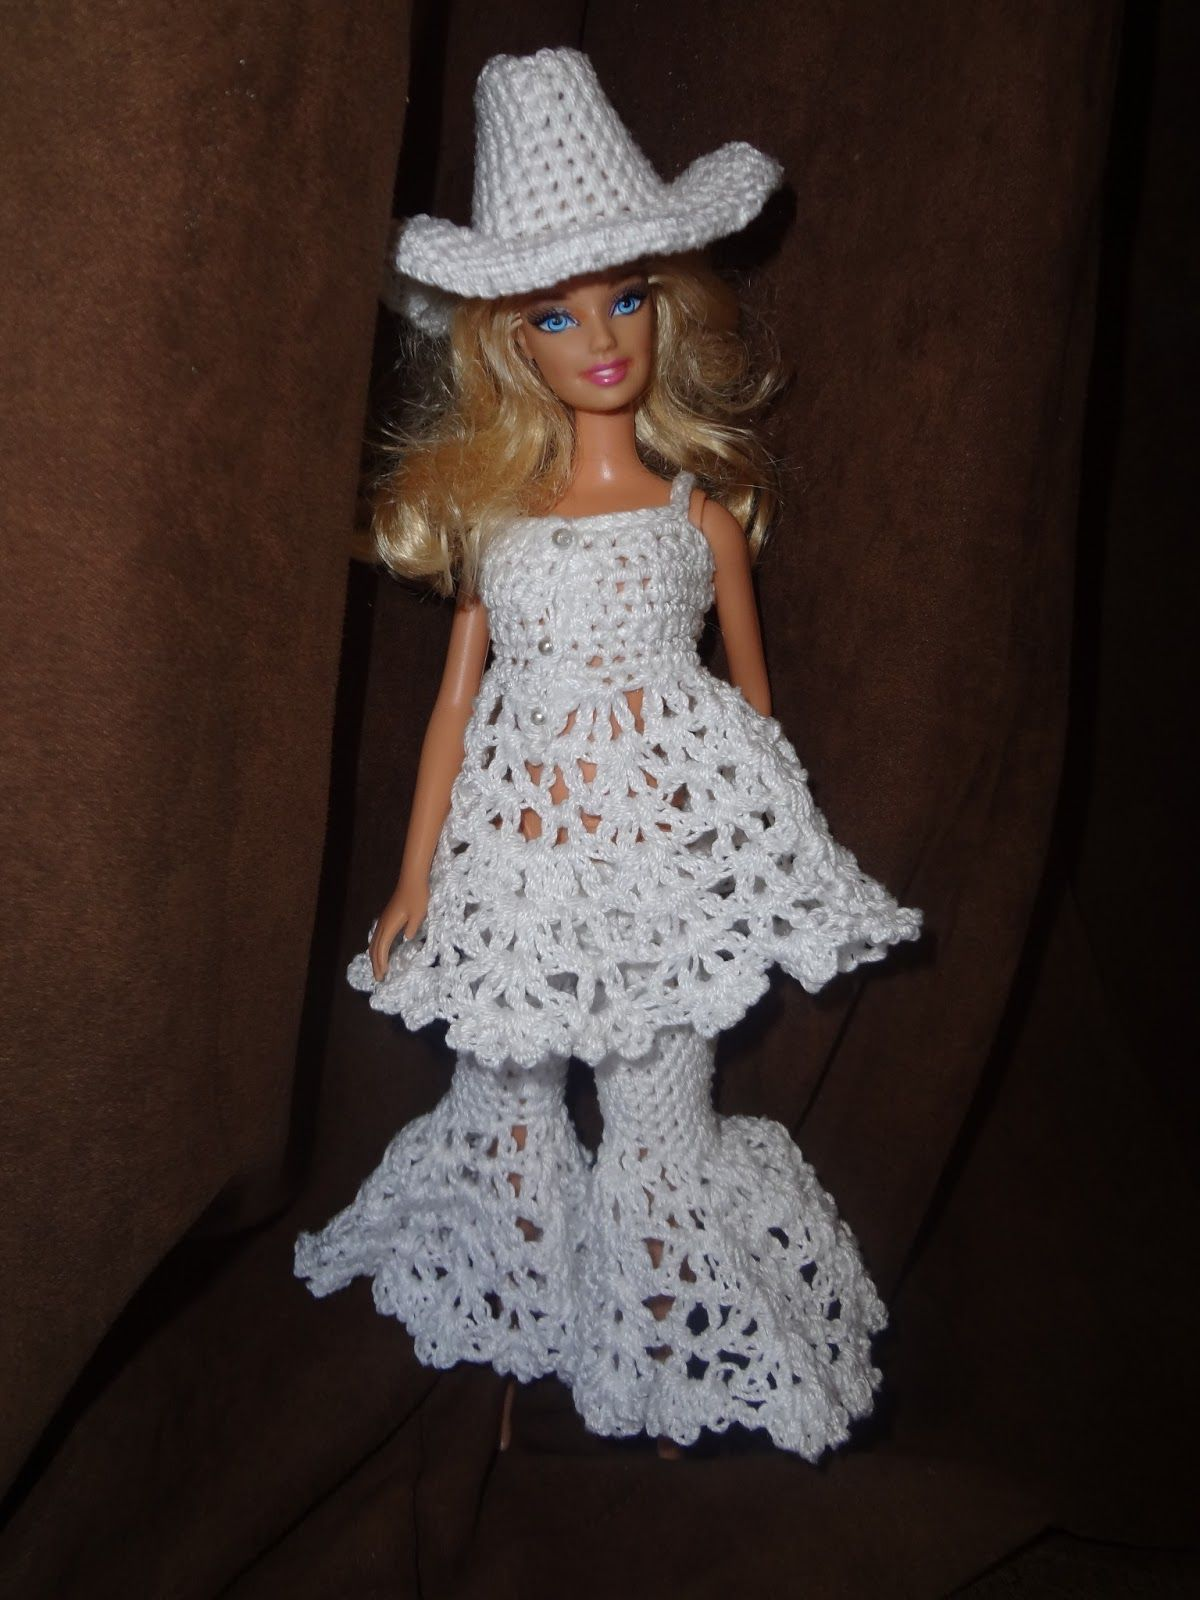 The Cowboy Cowgirl Free Barbie Hat Crochet Pattern | Barbie, Ken ...